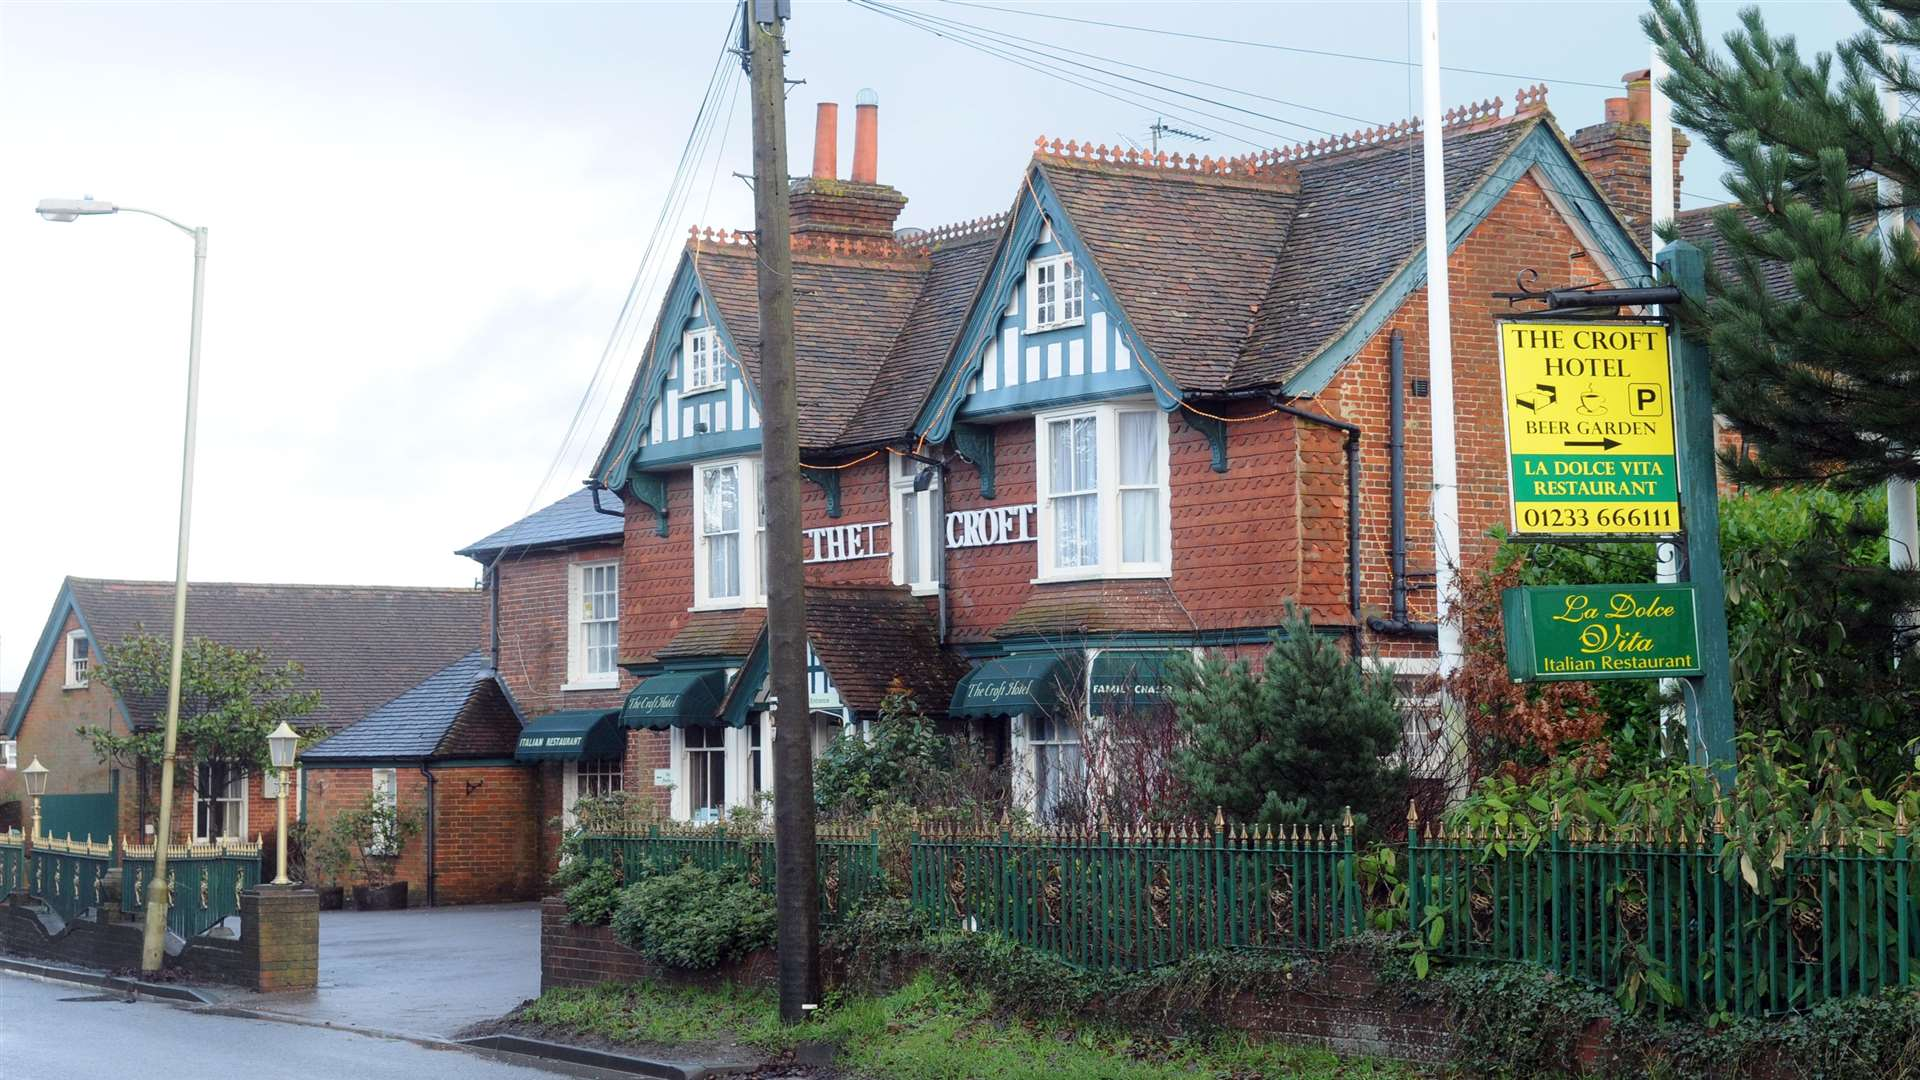 Plans to demolish The Croft hotel have been turned down